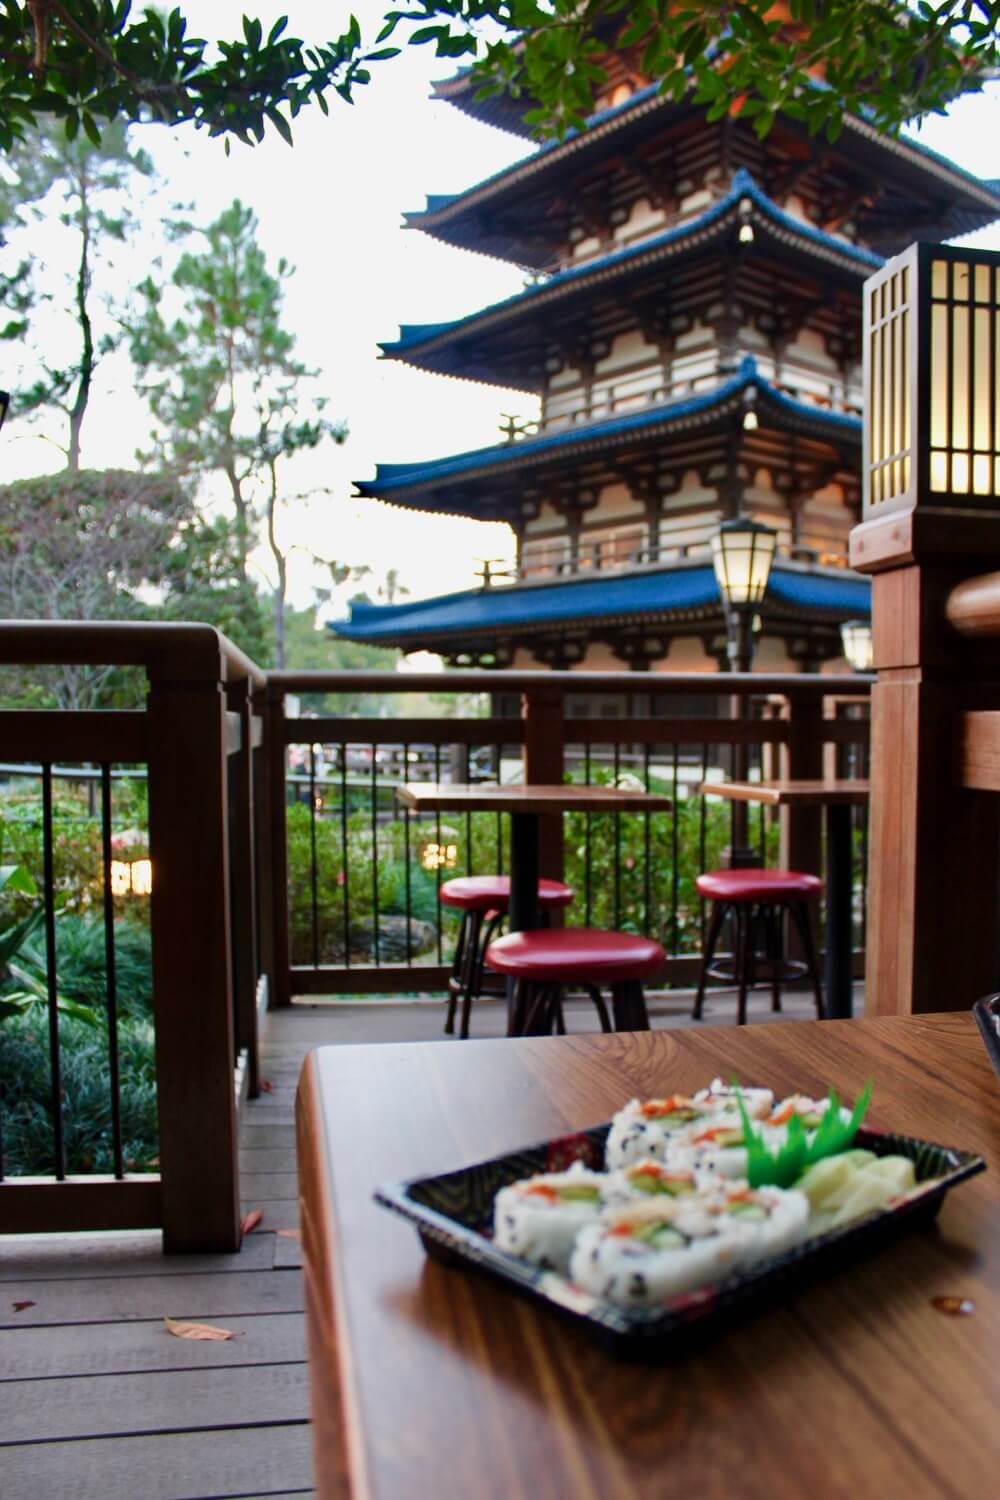 Counter Service Restaurants at Epcot - Katsura Grill Outdoor Seating